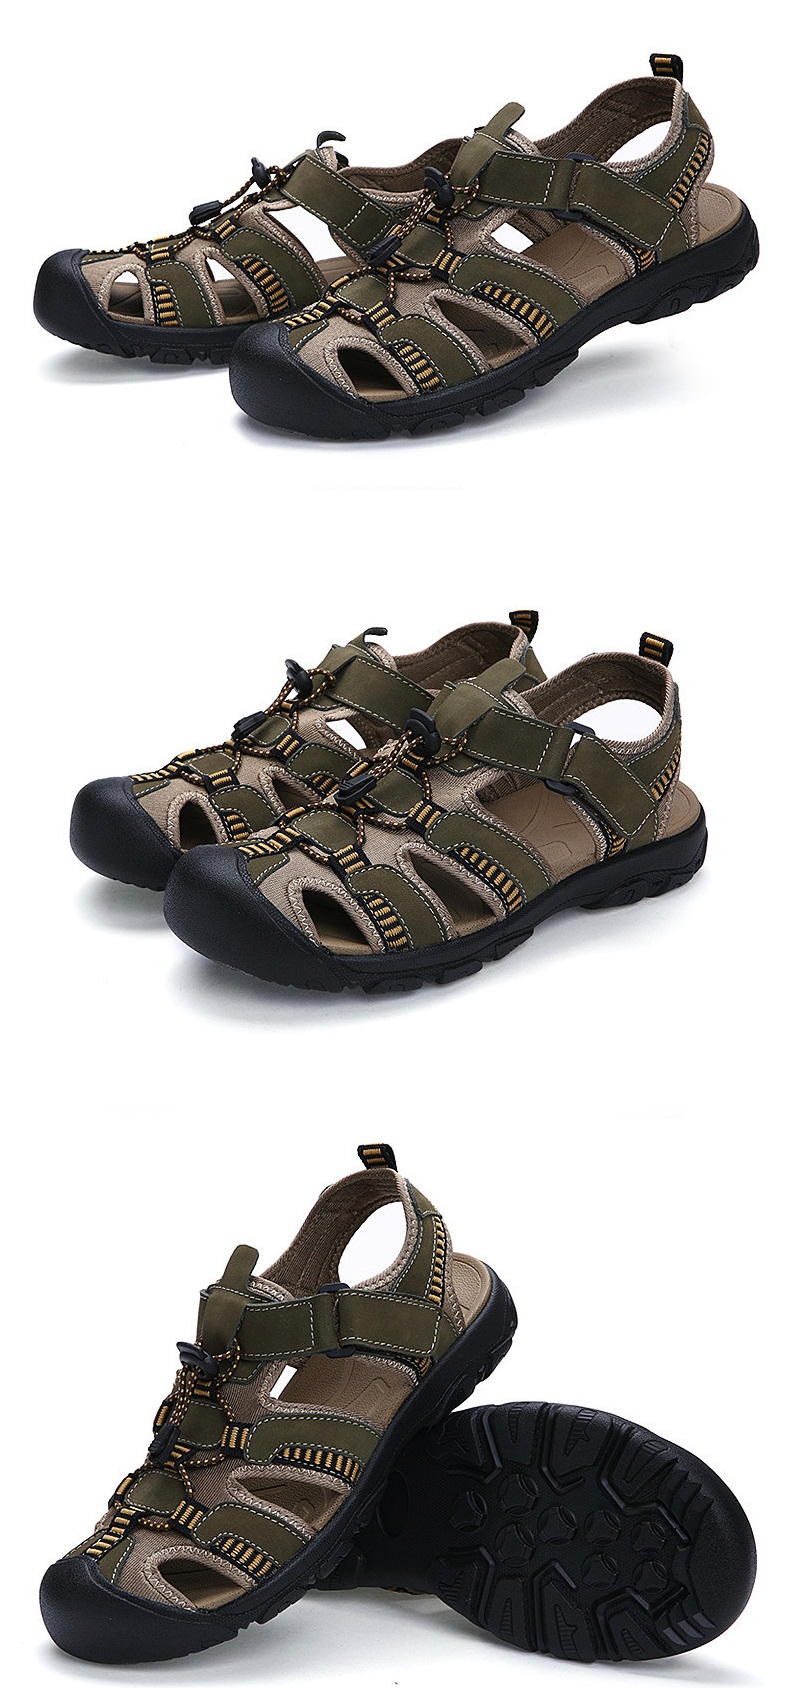 Men Leather Cut Out Fisherman Shoes Male Outdoor Breathable Walking Shoes Men Fashion Soft Sole Antiskid Casual Shoes AA51625 9 Online shopping Bangladesh